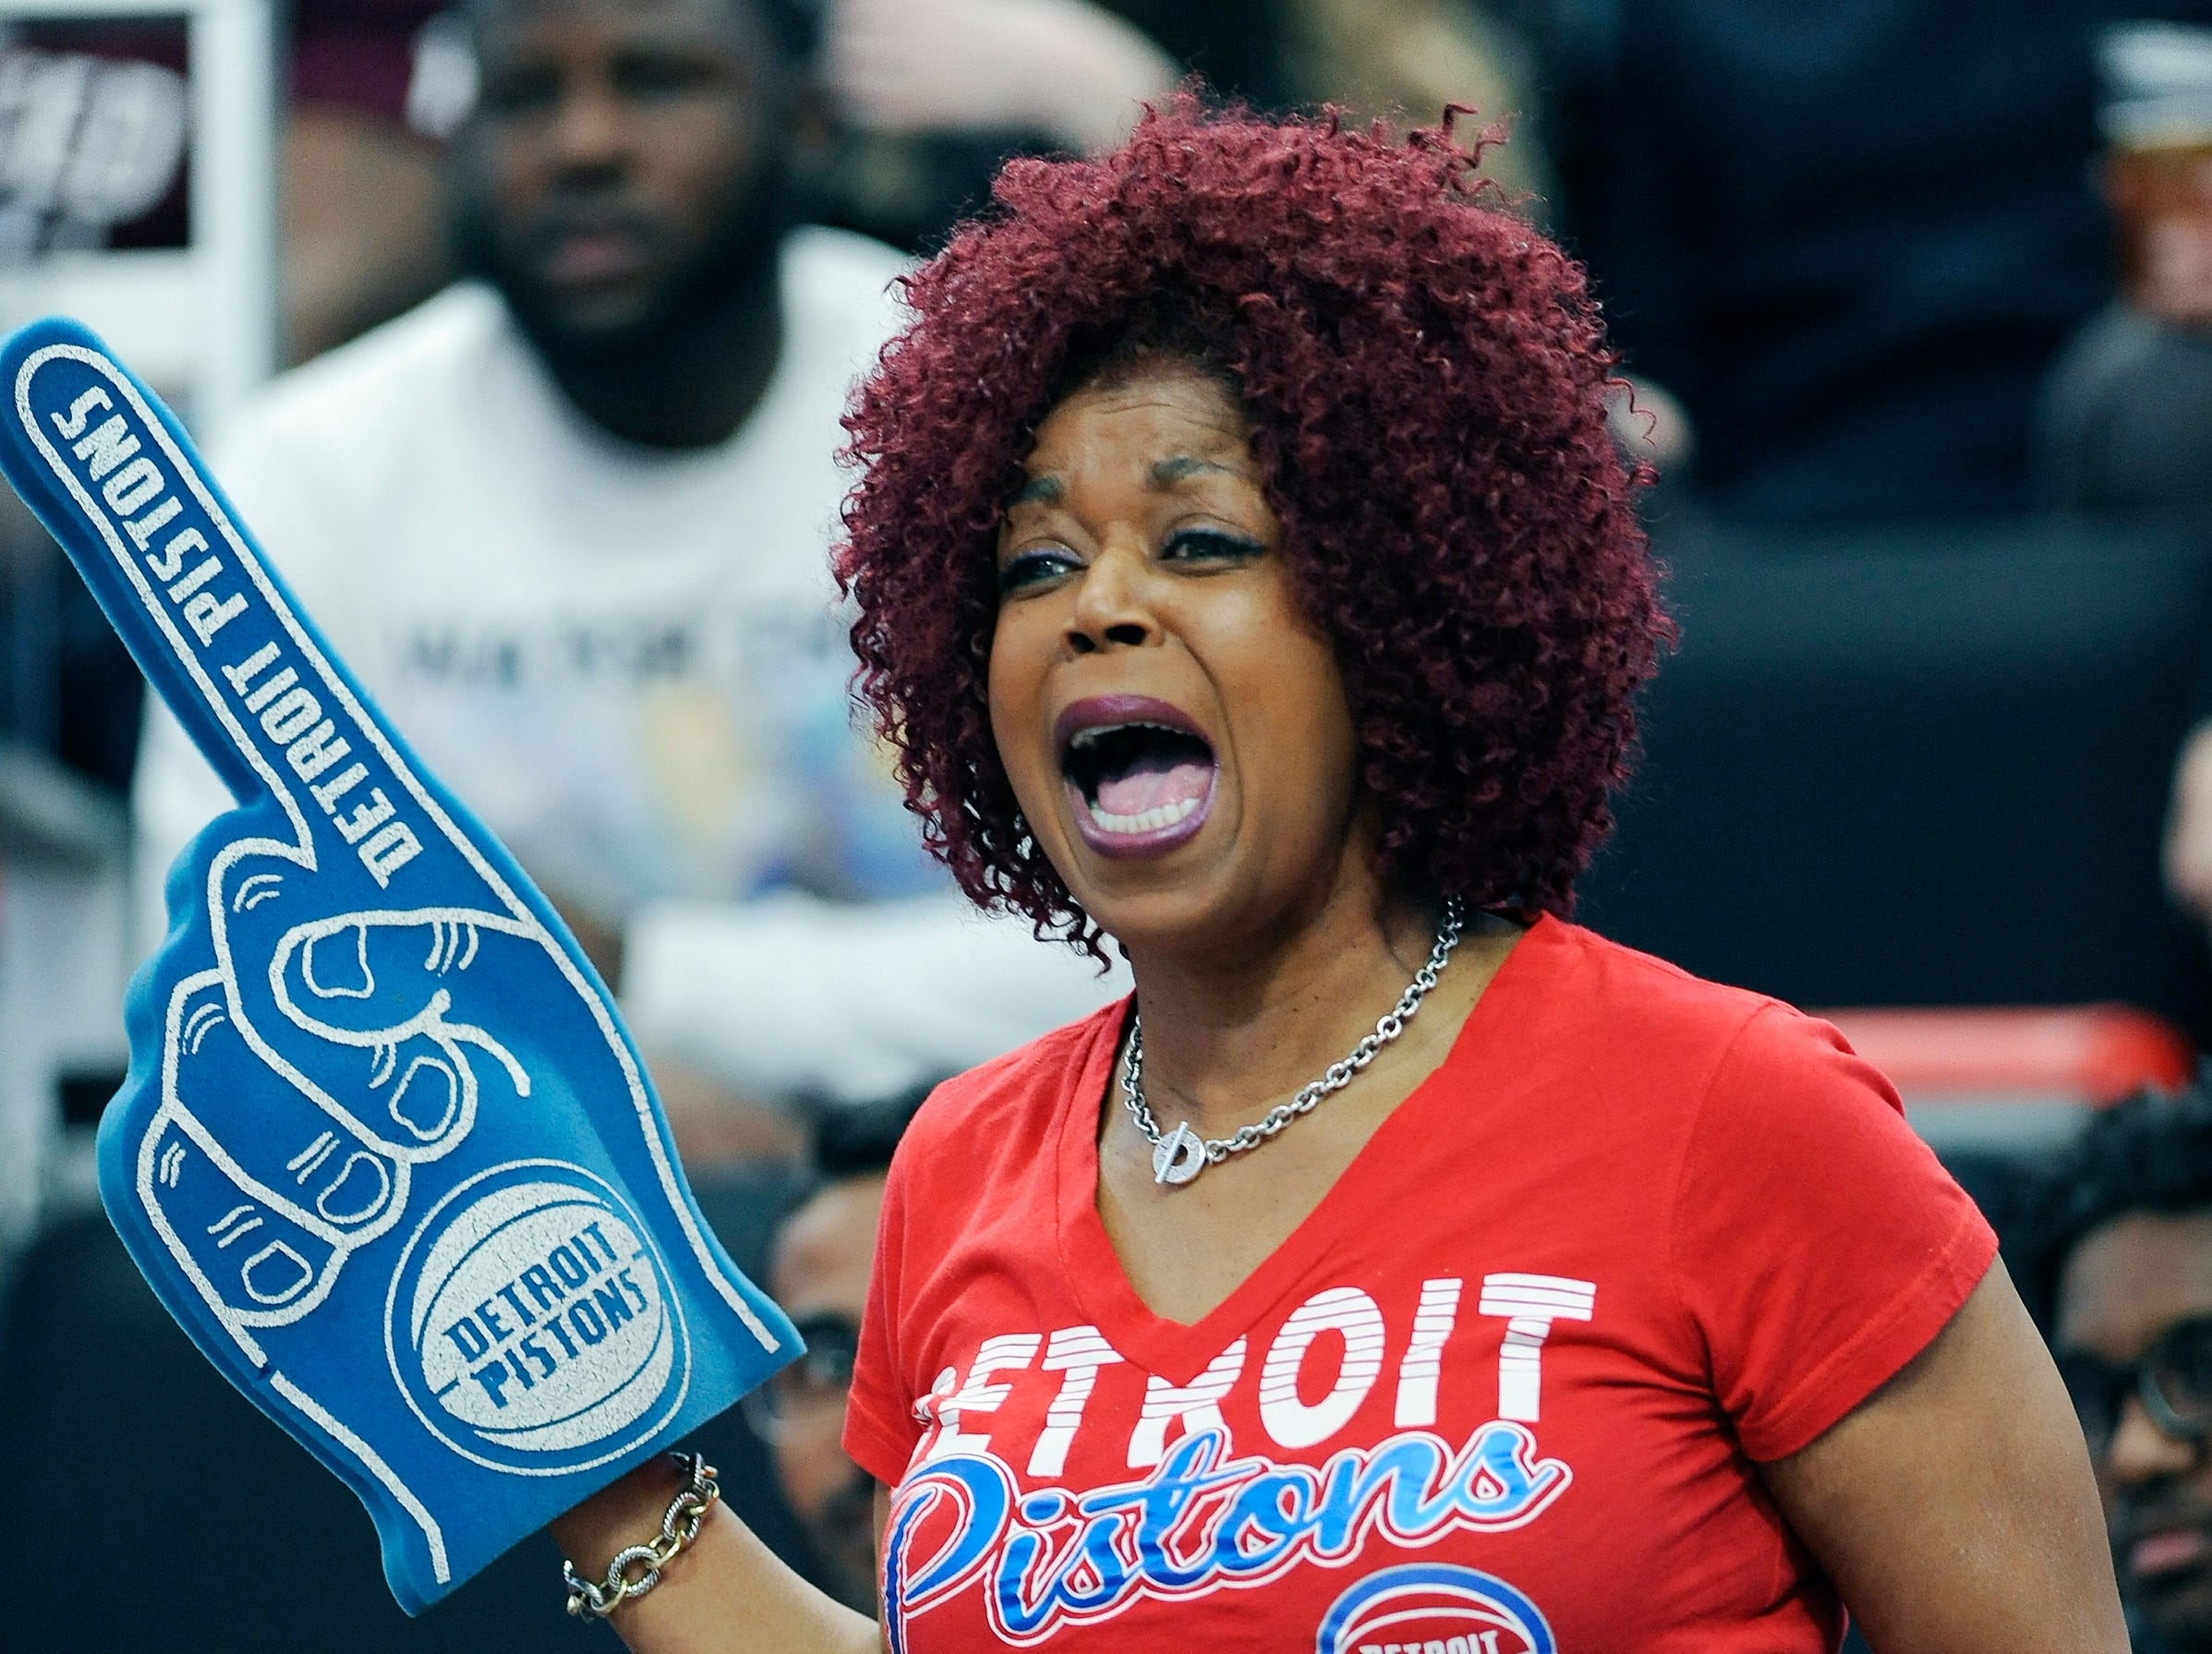 Kathy Morrow, 58, of Southfield cheers for the Pistons in the first quarter.